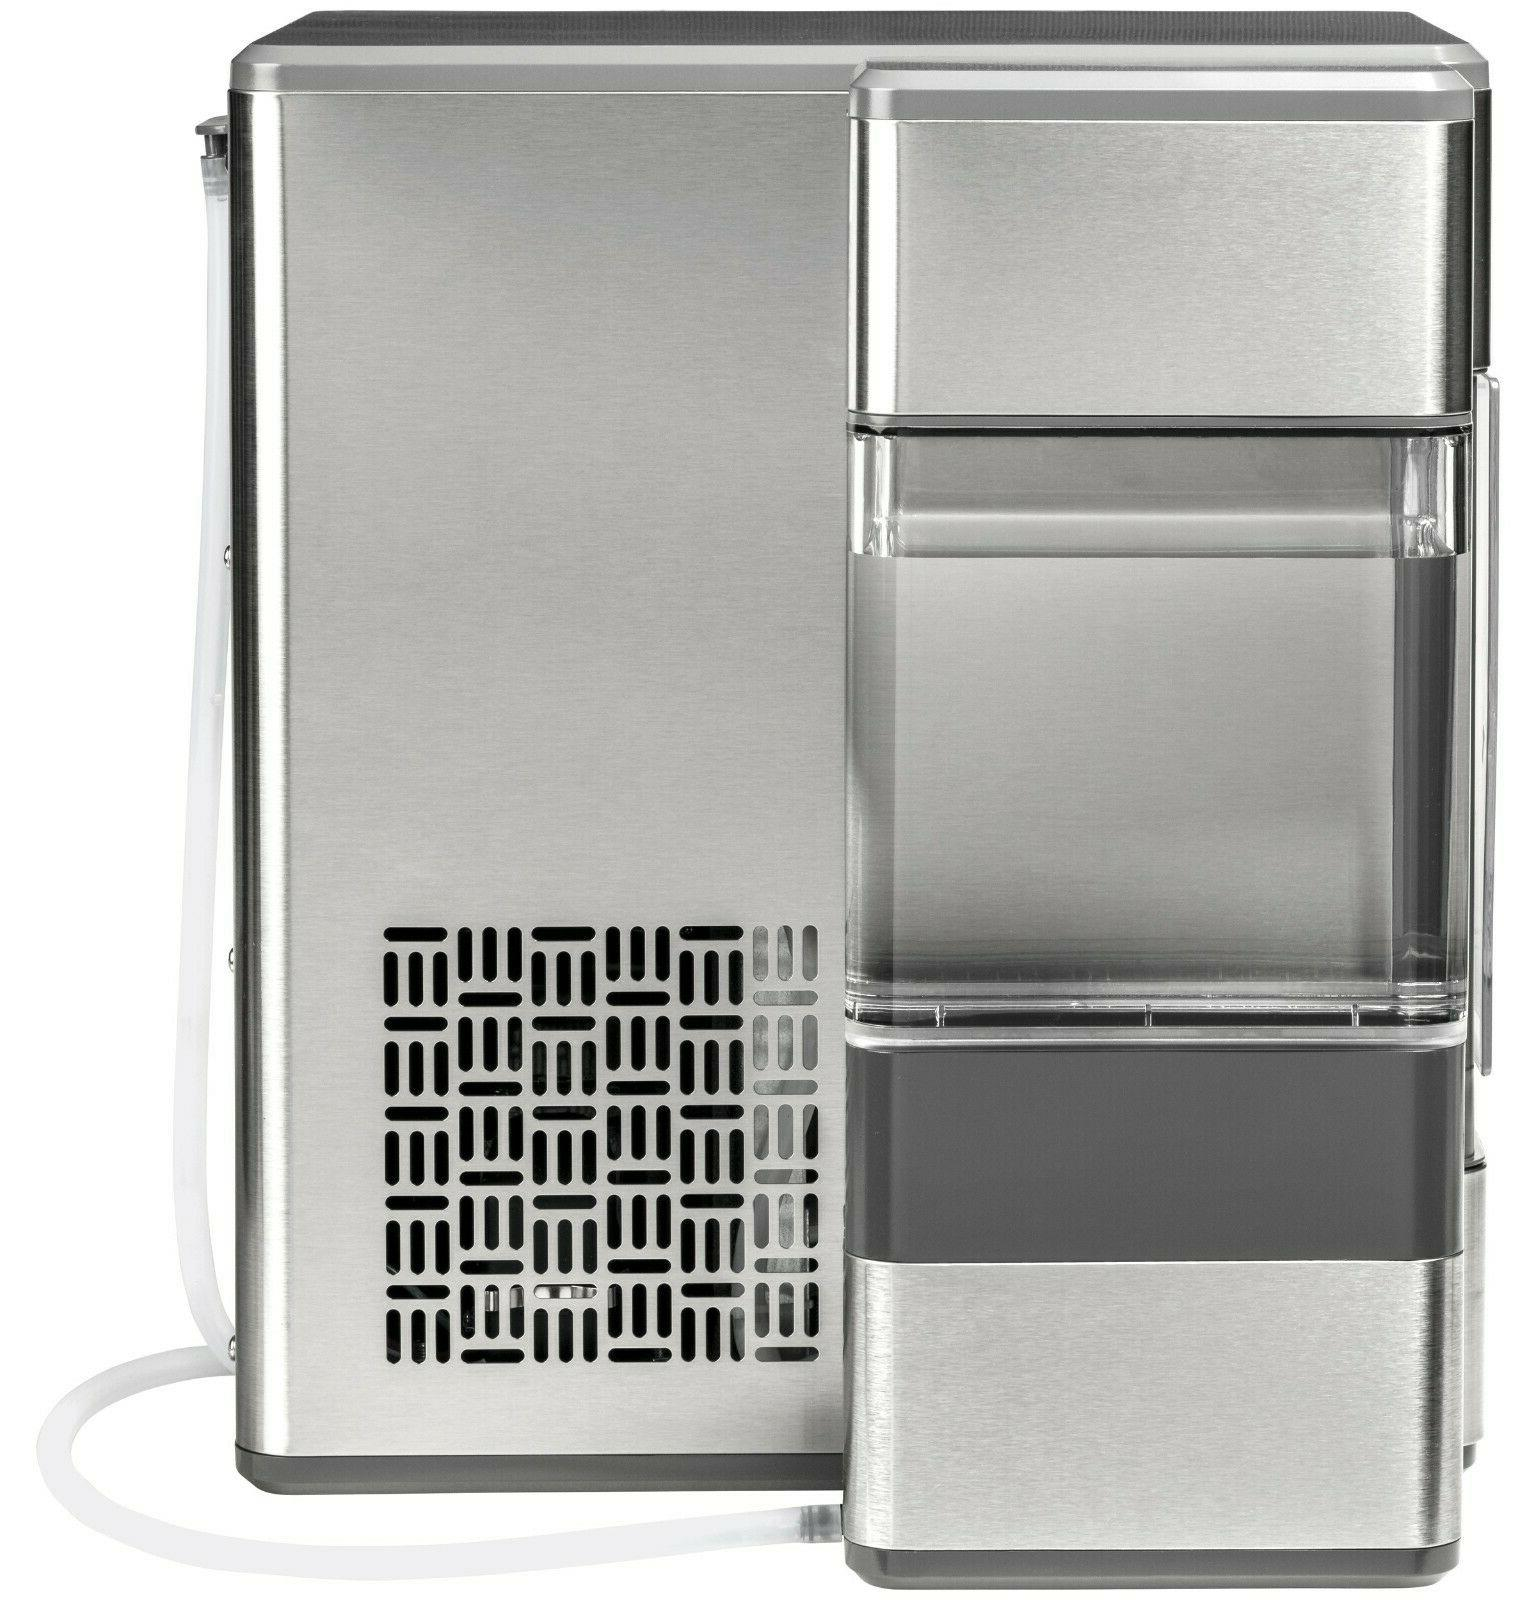 GE Nugget Ice Maker Programmable